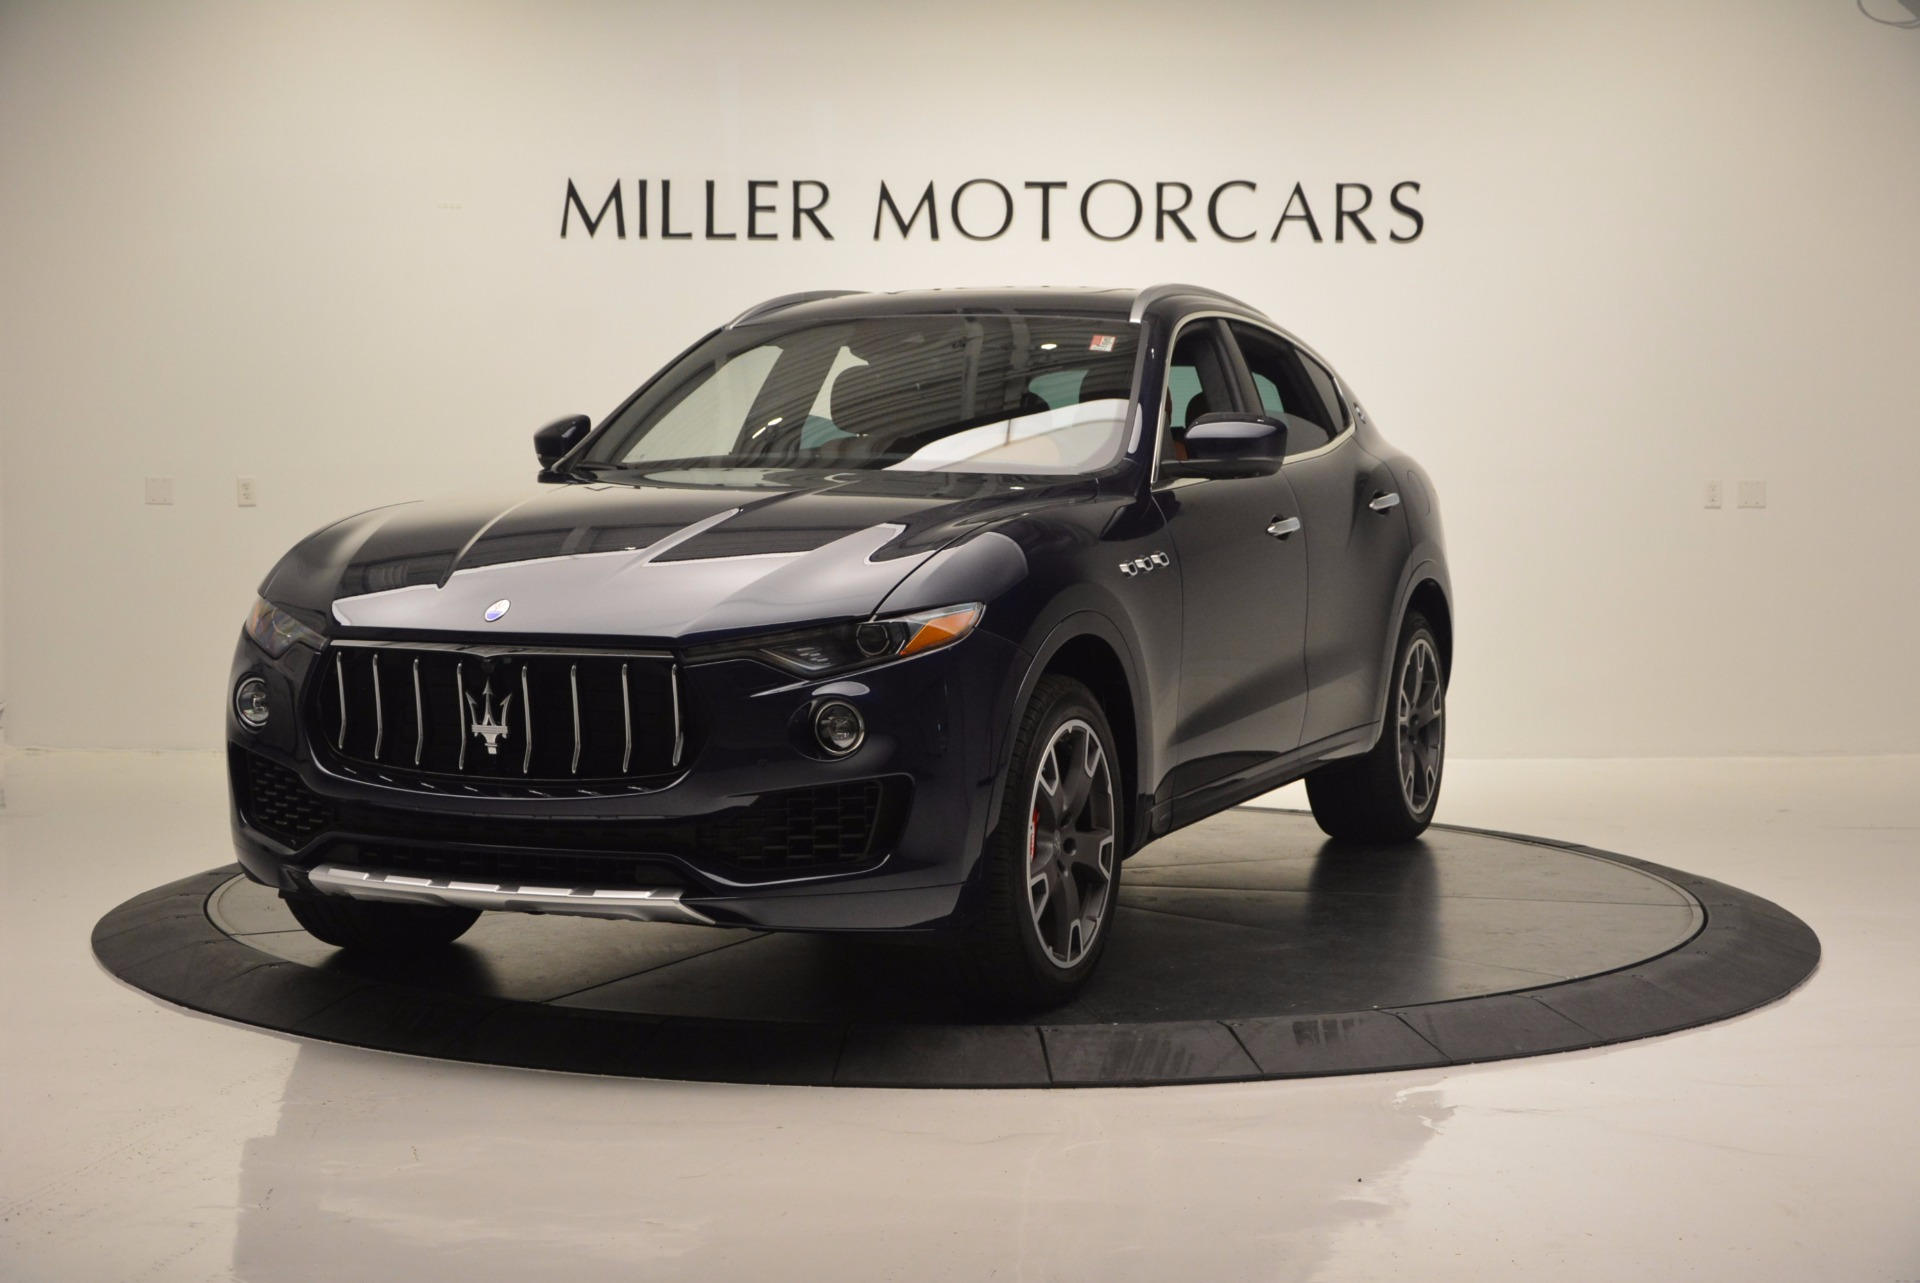 Used 2017 Maserati Levante S for sale Sold at Aston Martin of Greenwich in Greenwich CT 06830 1